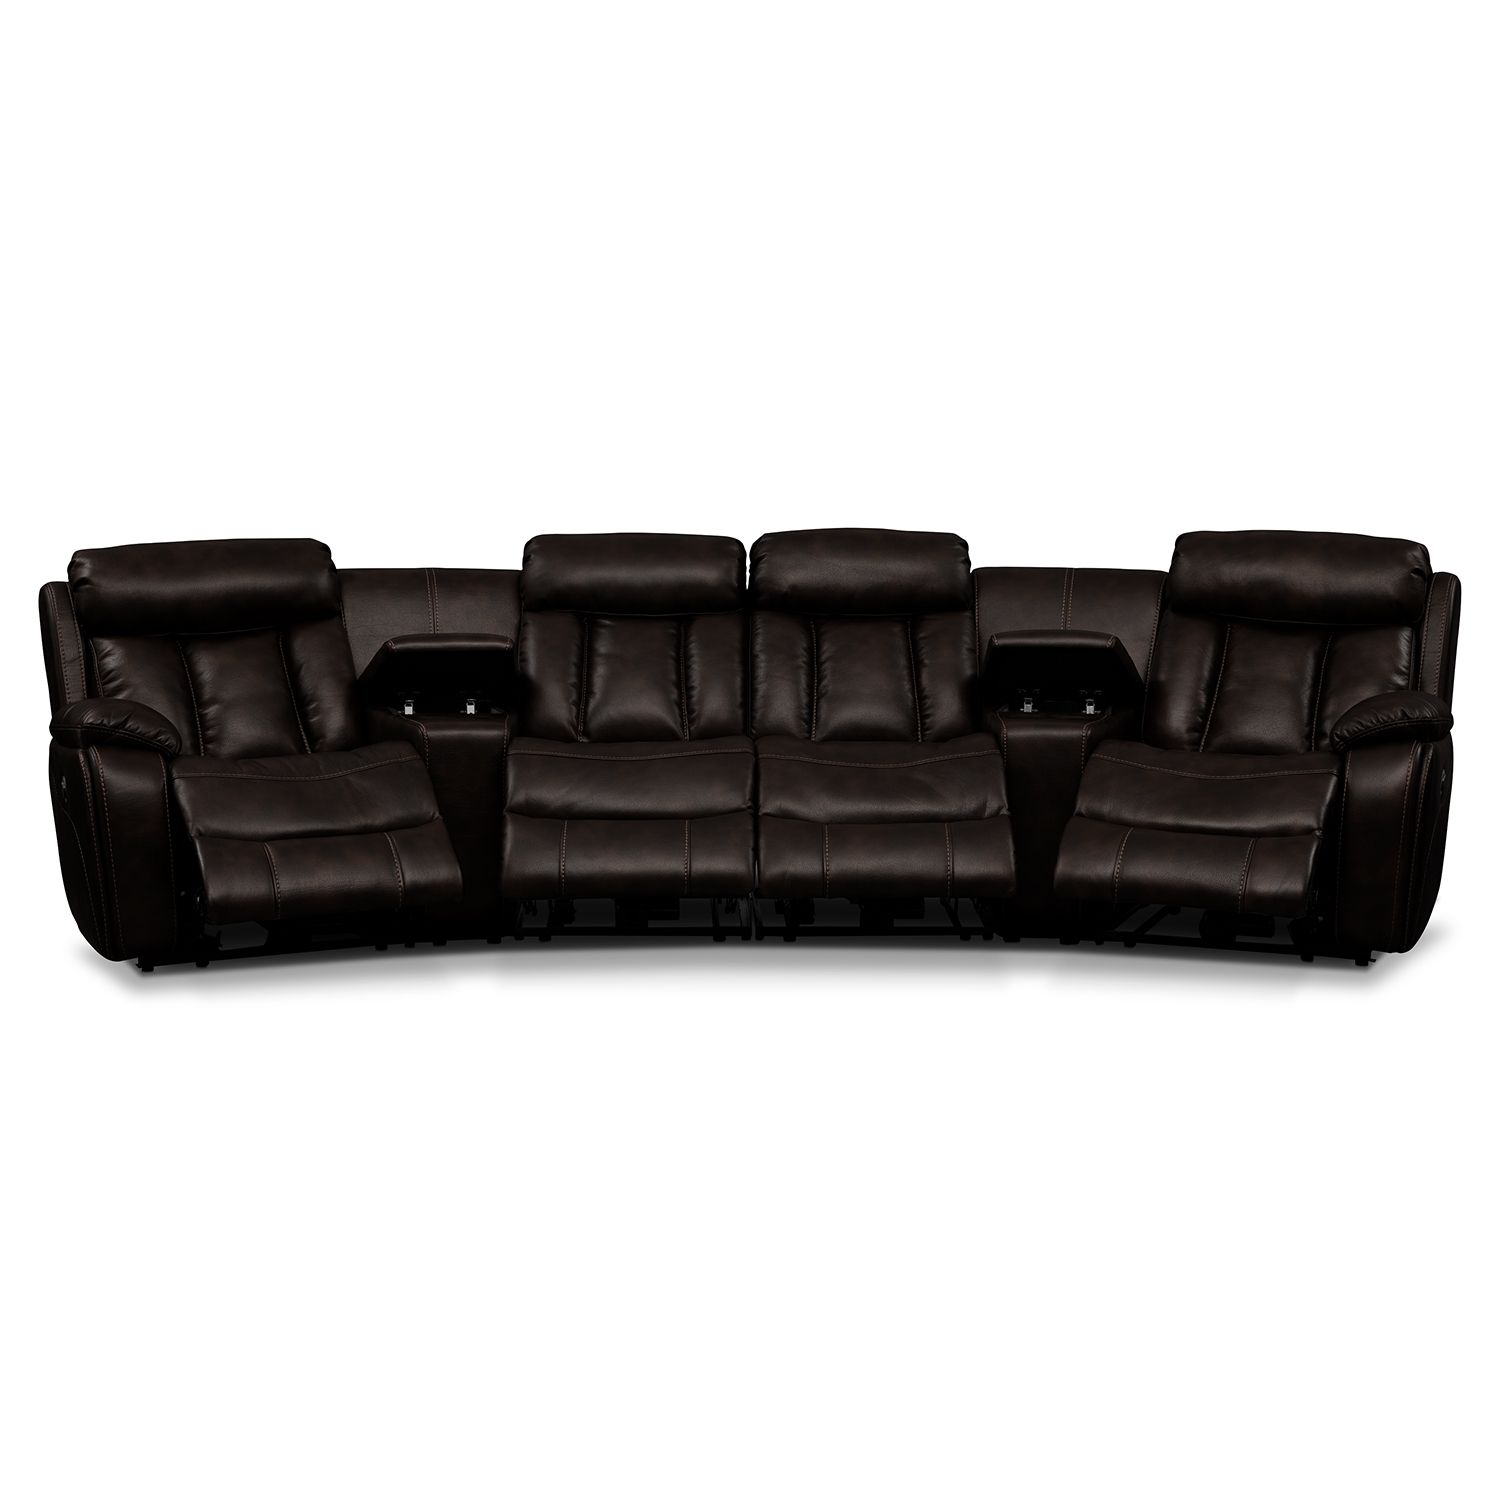 American Signature Furniture   Diablo Leather 6 Pc. Power Reclining .